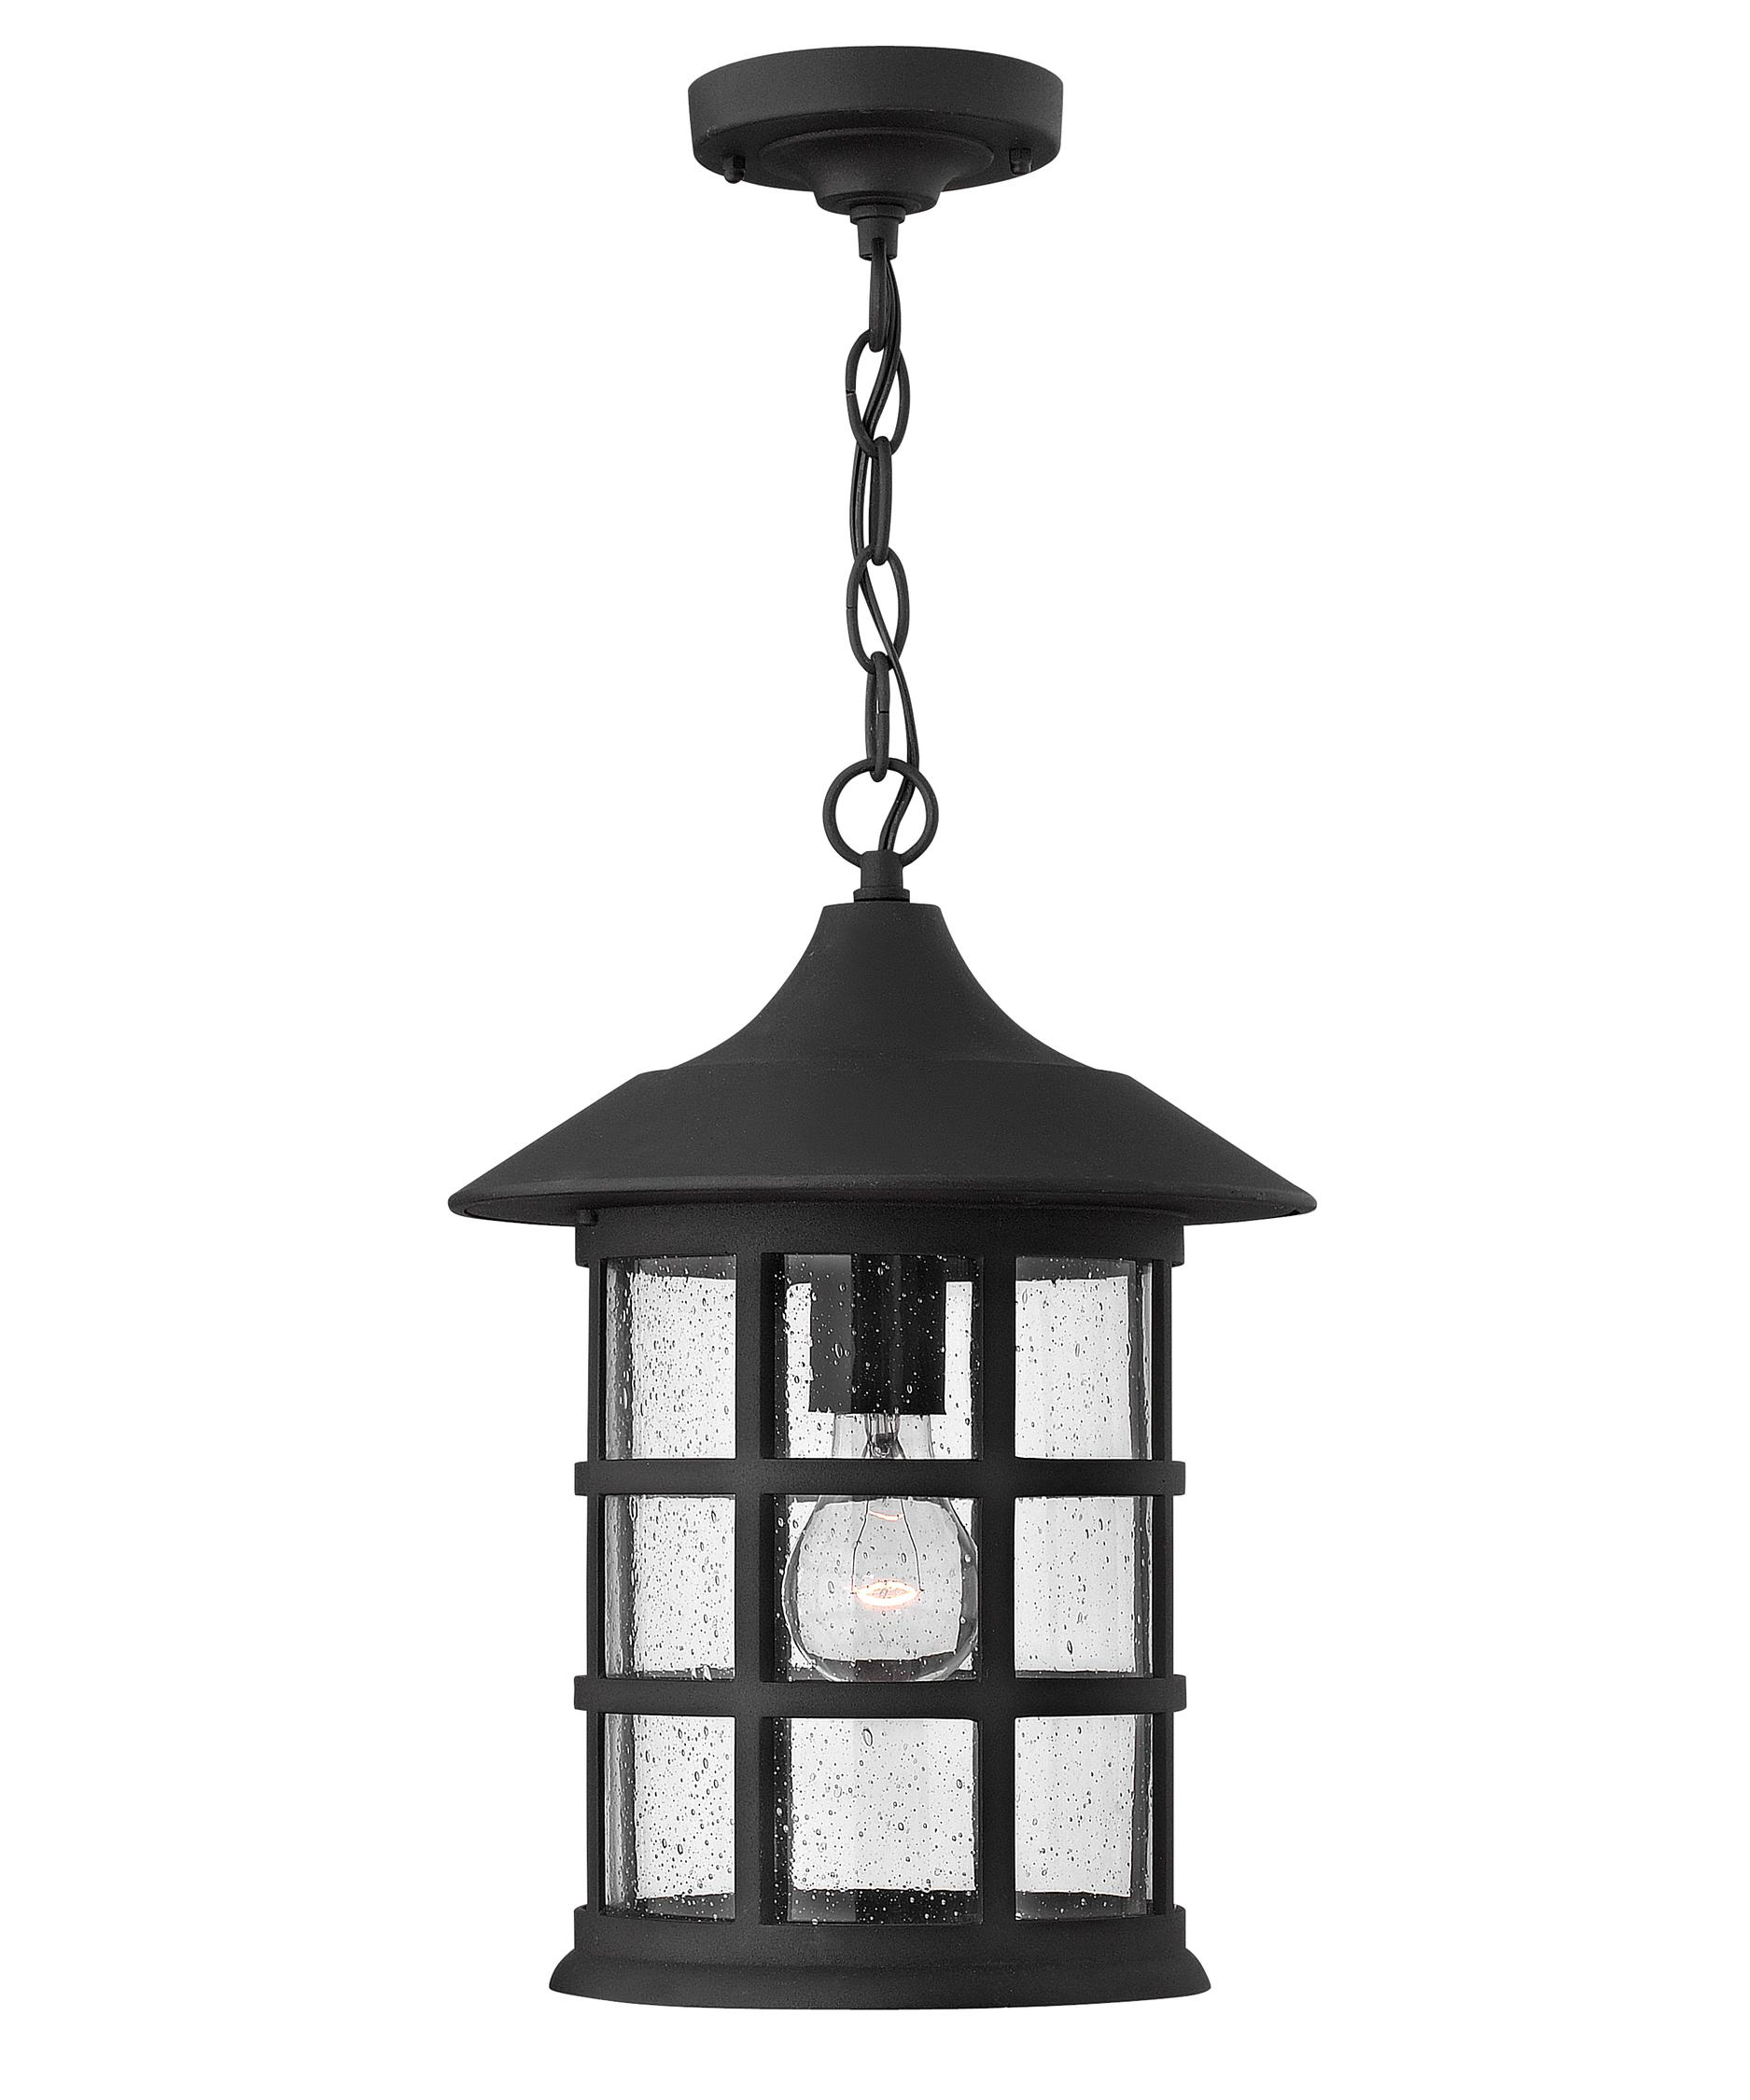 Outdoor hanging lamp - Shown In Black Finish And Clear Seedy Glass